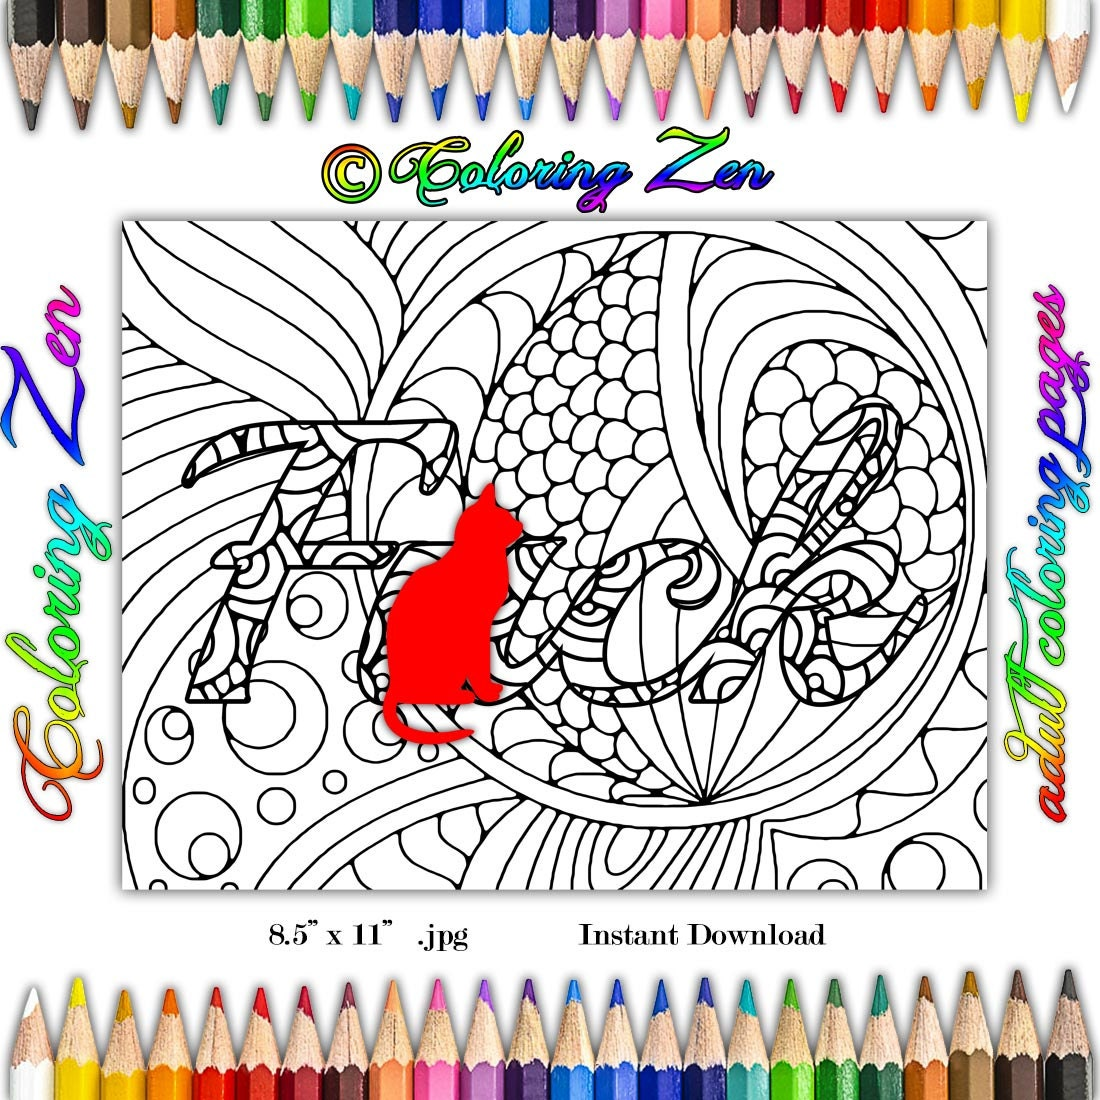 Swearing colouring in book nz - F Ck 1 Coloring Page Swearing Coloring Pages For Adults Sweary Color Therapy Stress Relief Meditative Coloring Grown Up Coloring